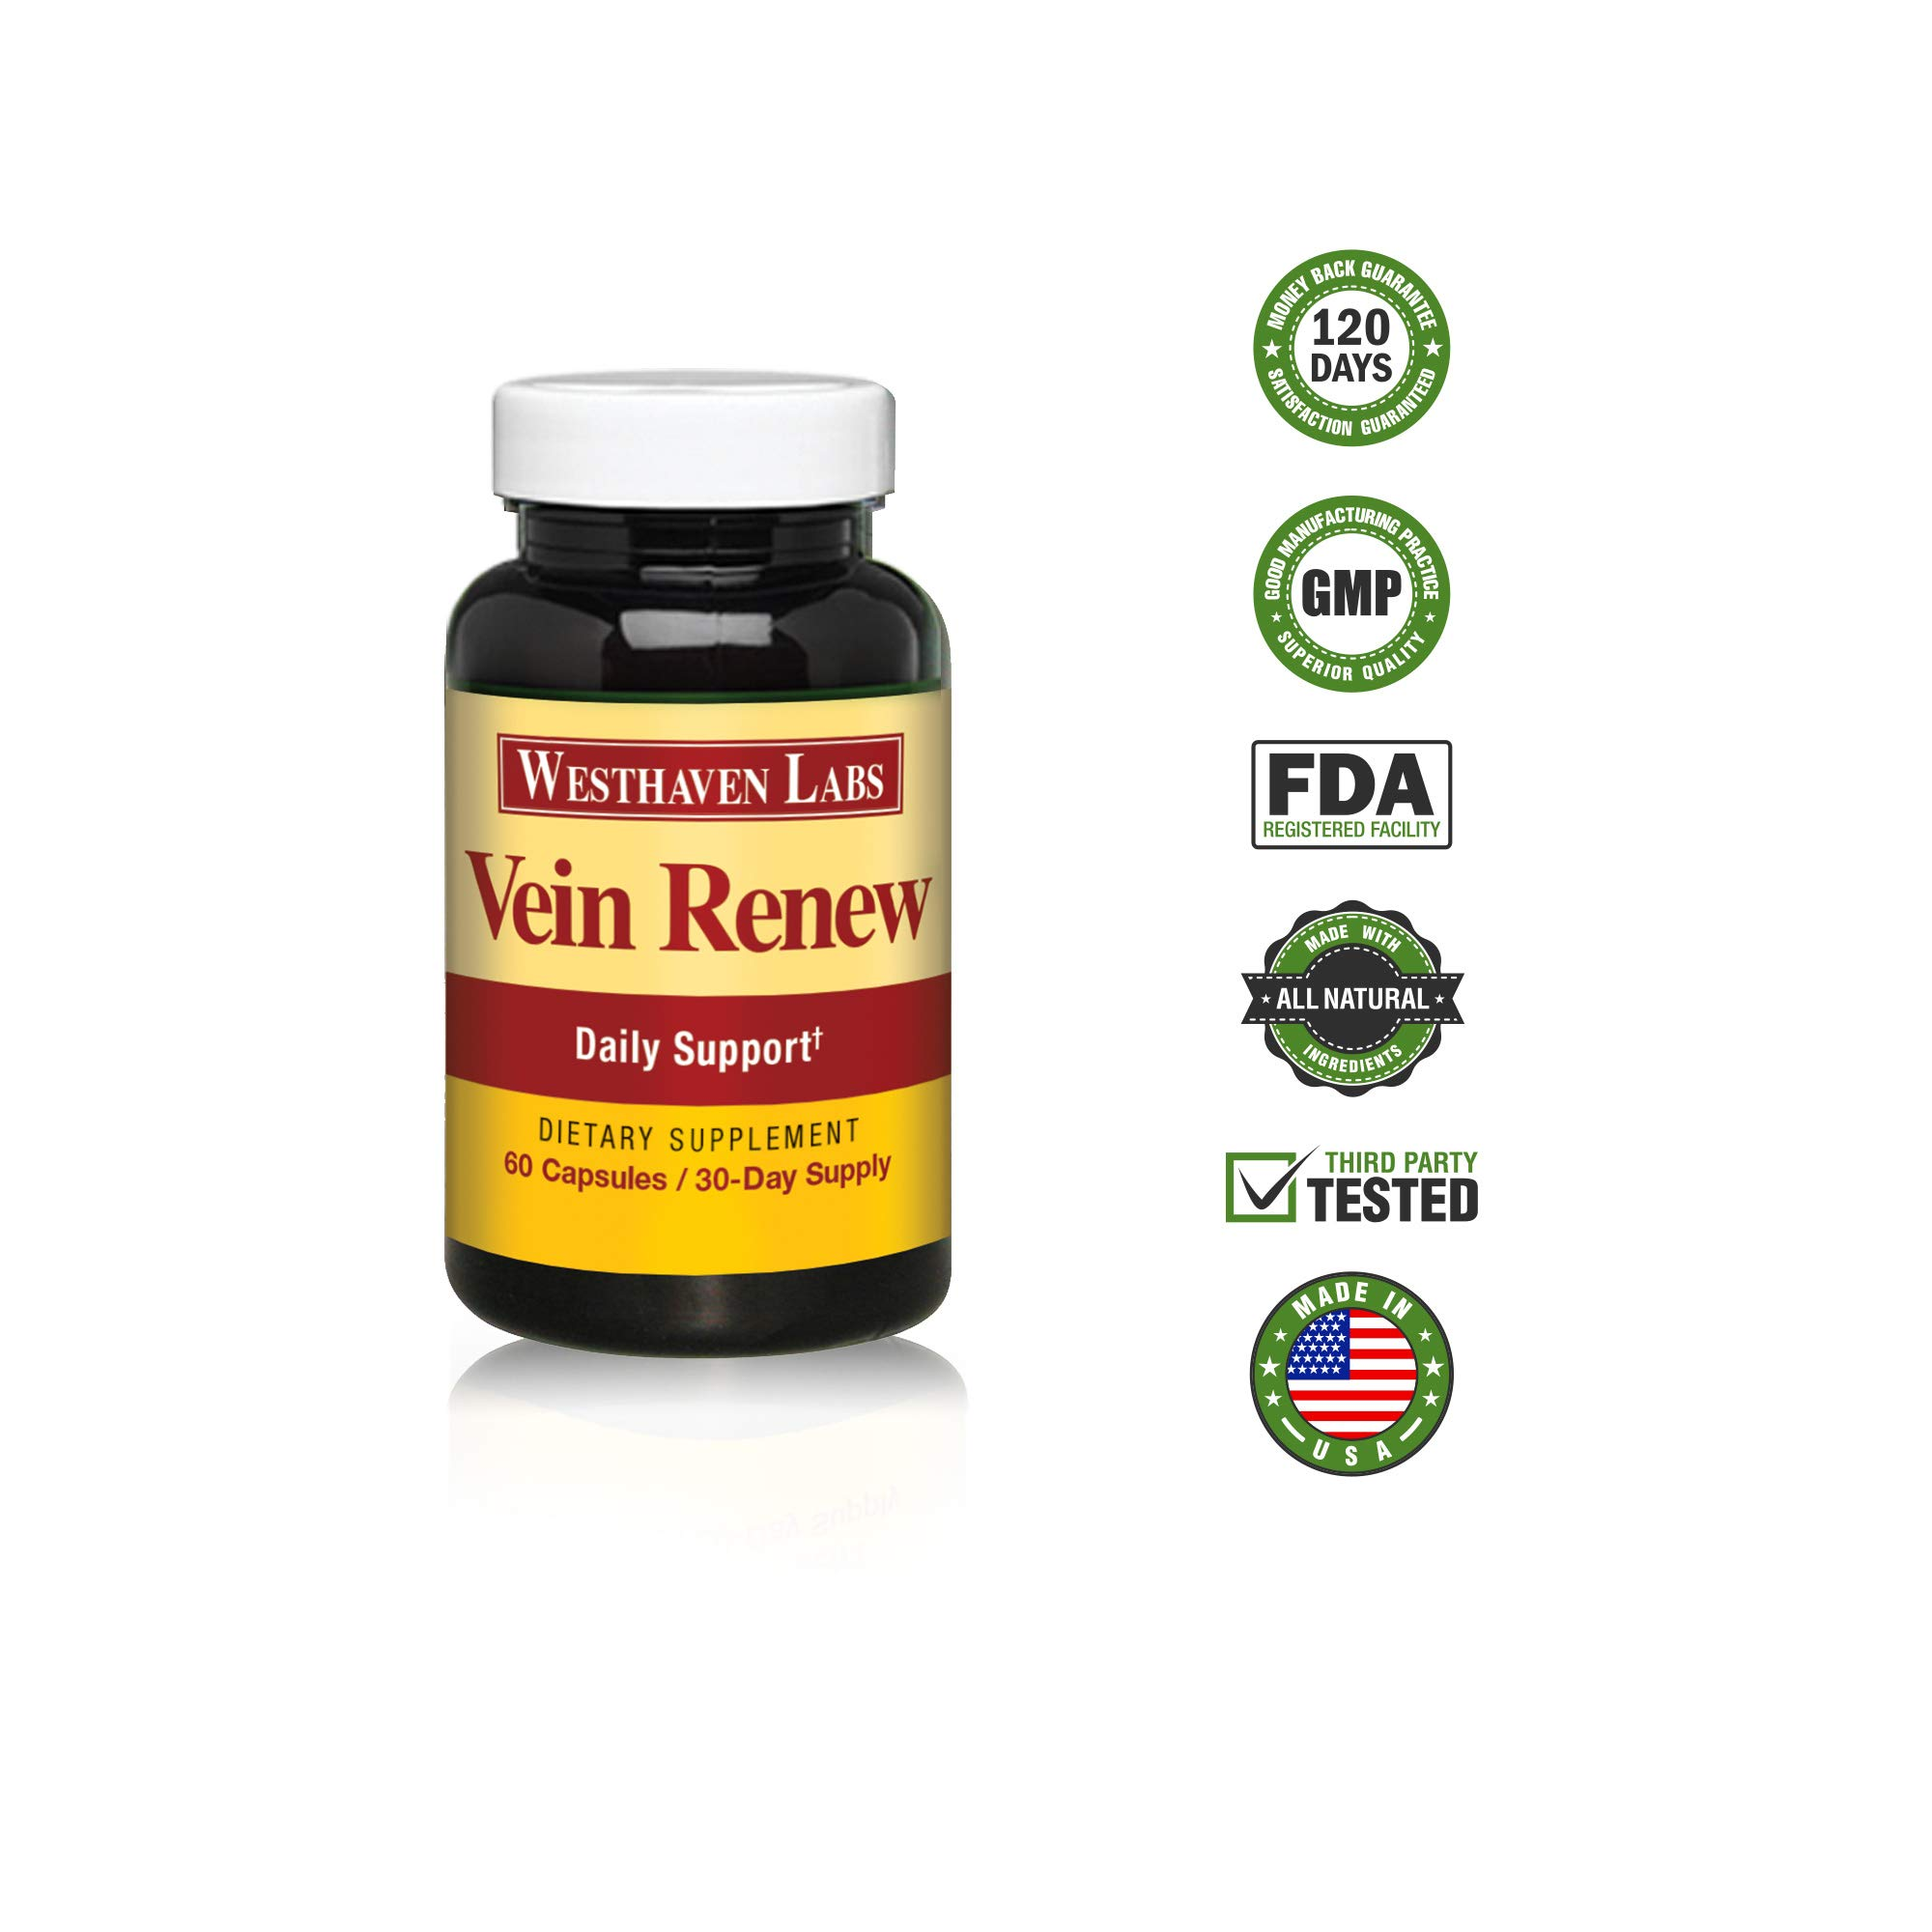 Vein Renew | Lower Leg Support Formula | All Natural Vein Supplement | Healthy Leg Circulation | Restless Leg Syndrome Relief | 6 Month Supply